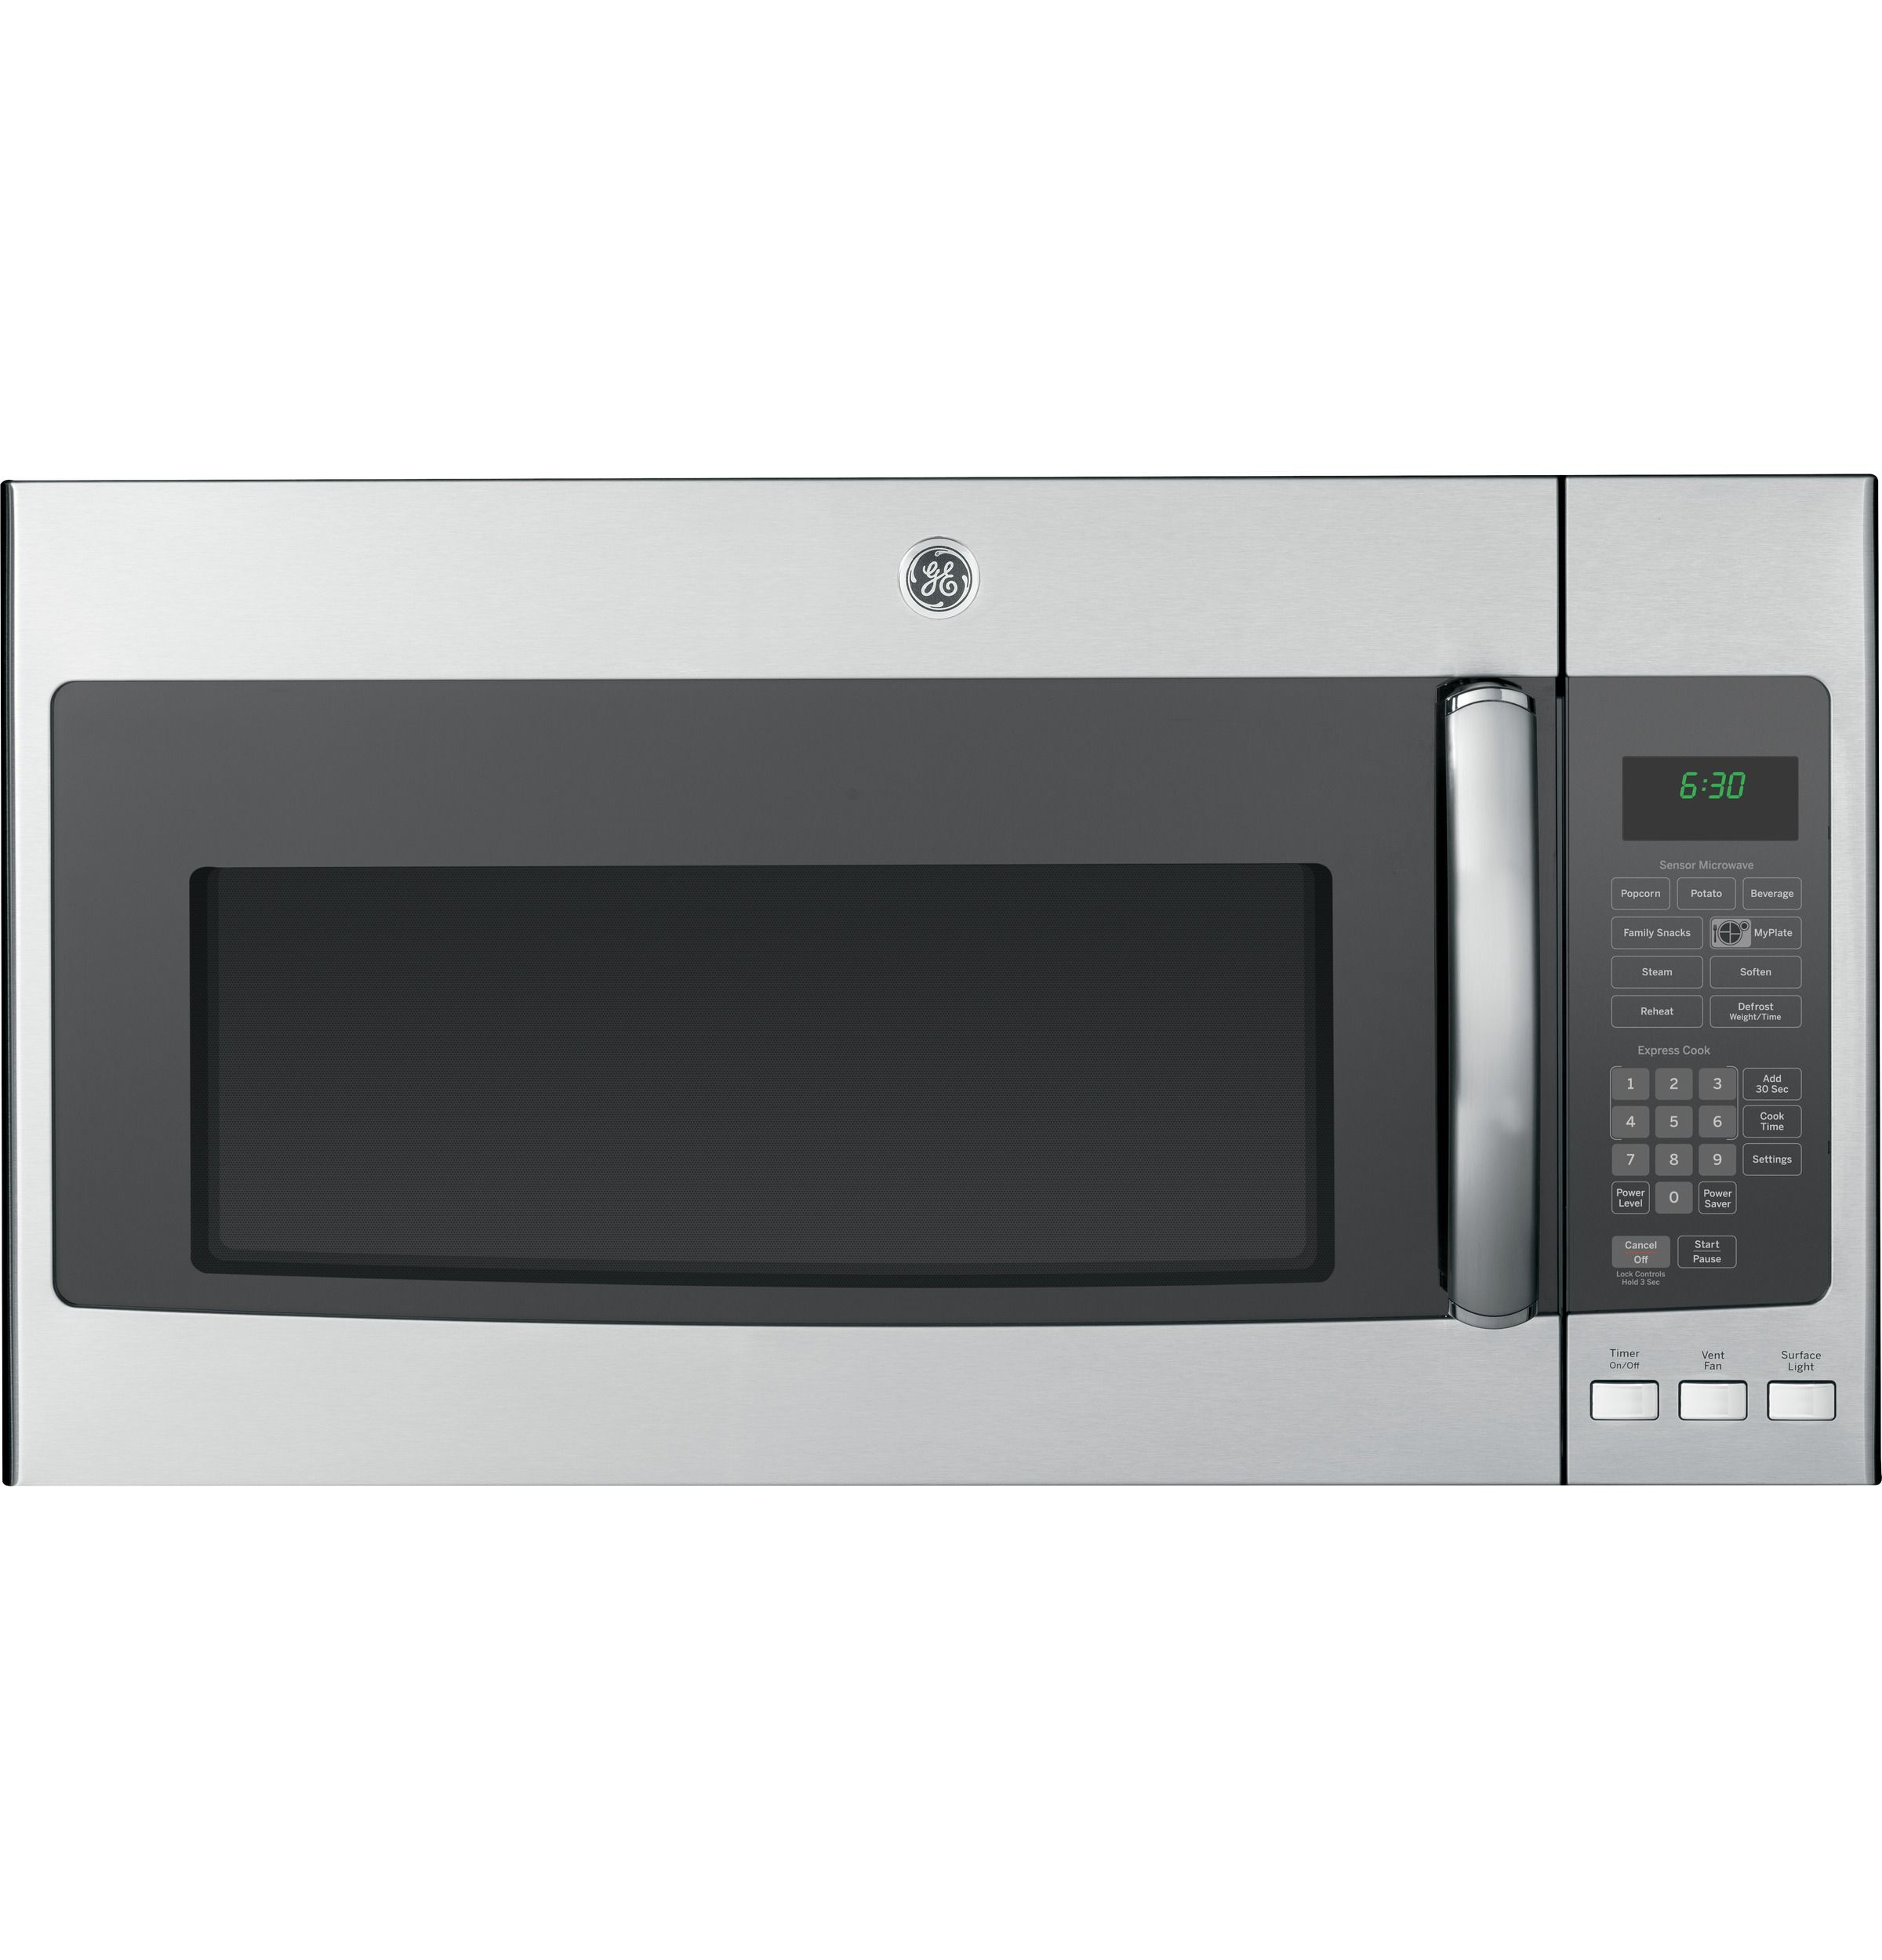 Pnm9196sfss Ge Profile Series 1 9 Cu Ft Over The Range Microwave Oven With Recirculating Venting Ge Range Microwave Stainless Steel Microwave Microwave